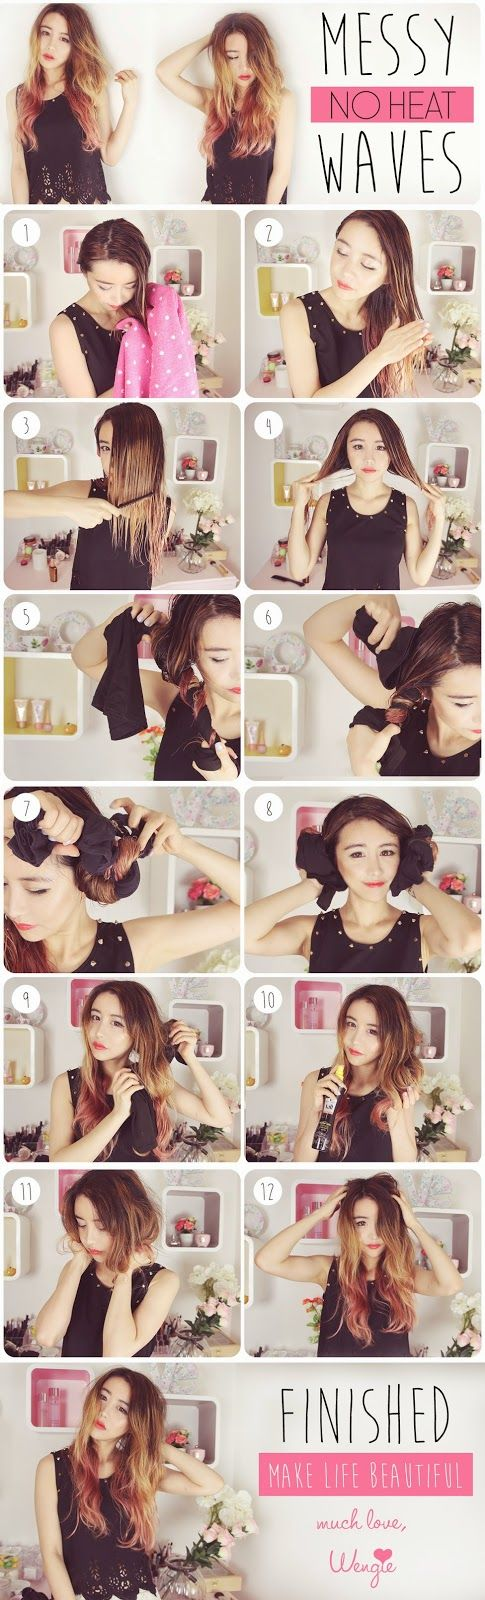 wengie.com - beauty, fashion, lifestyle, diet, ulzzang, korean and asian inspired makeup tutorials